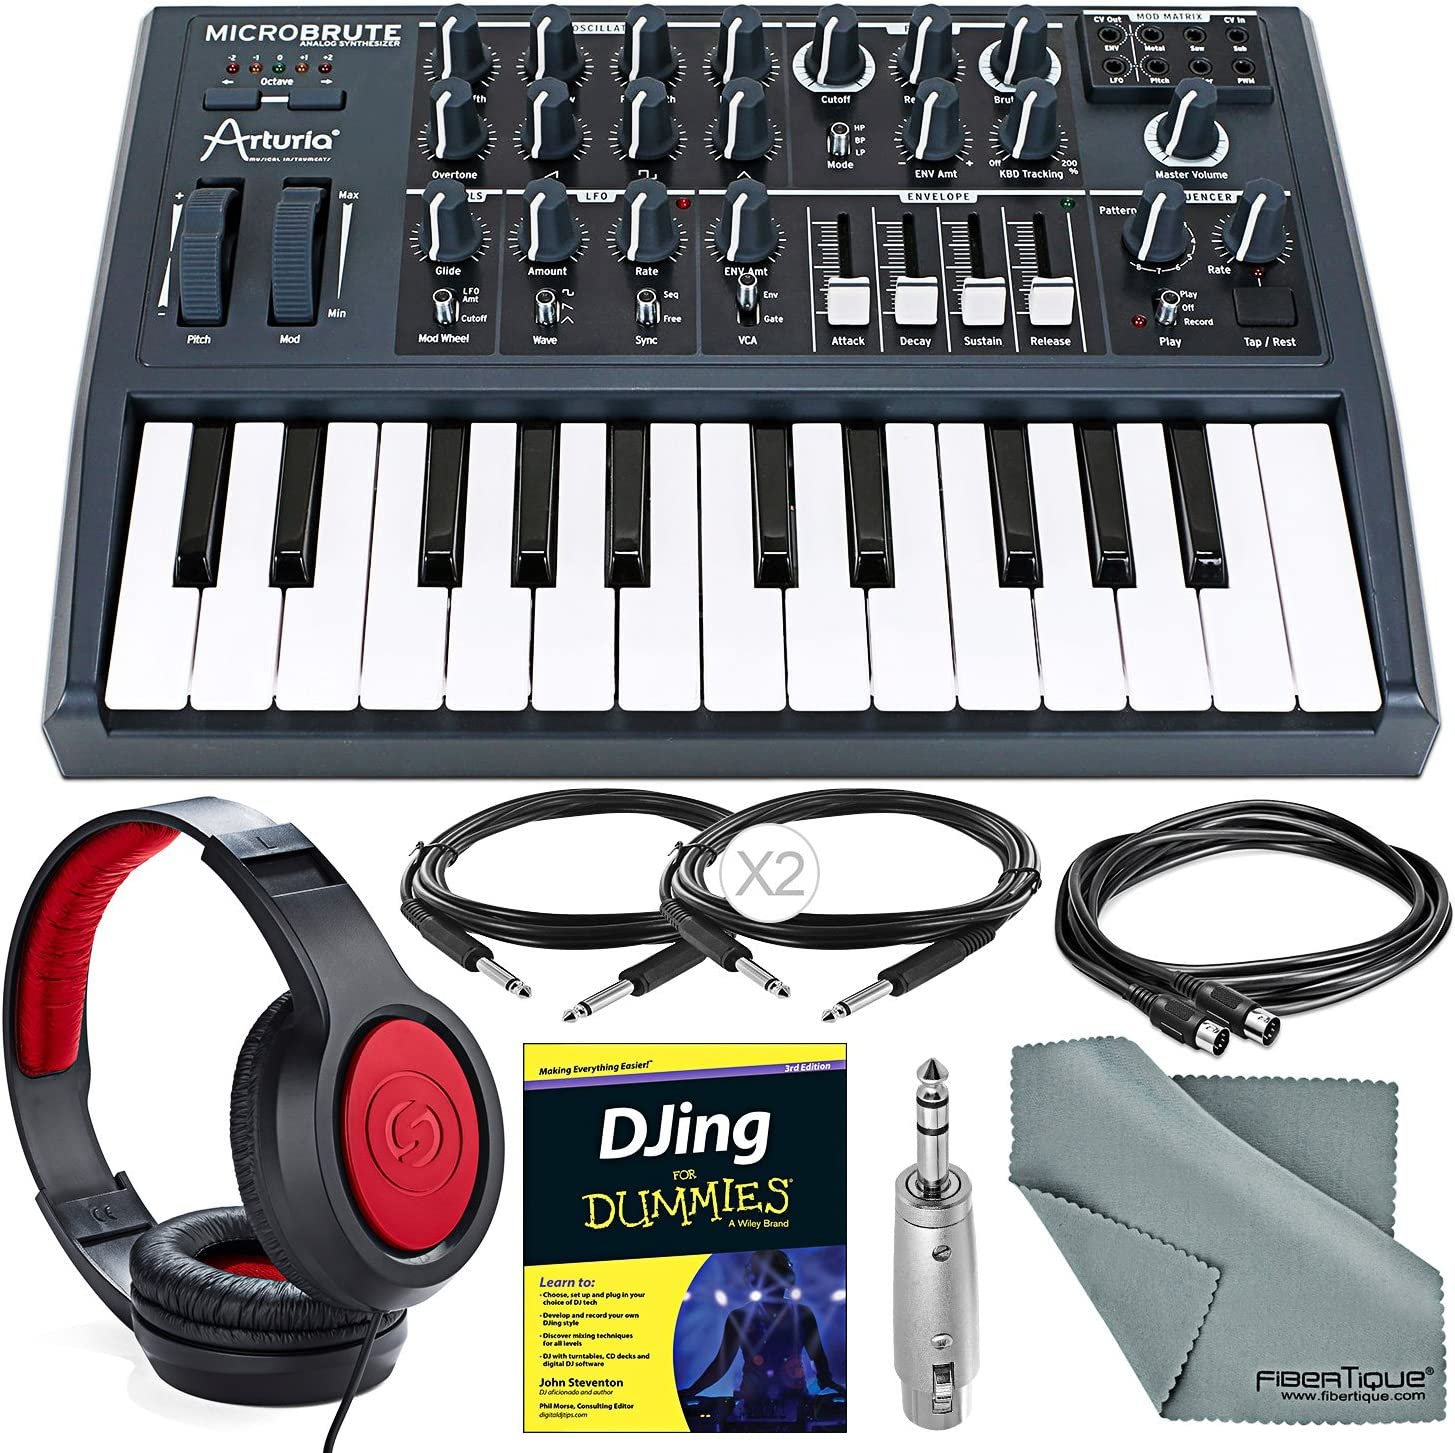 Arturia Microbrute 25-Note Mini Keyboard Analog Synthesizer and Deluxe Bundle w/Samson SR360 Stereo Headphones + Adapter + Cables + Djing for Dummies Guide 817NlB1GQoLSL1500_